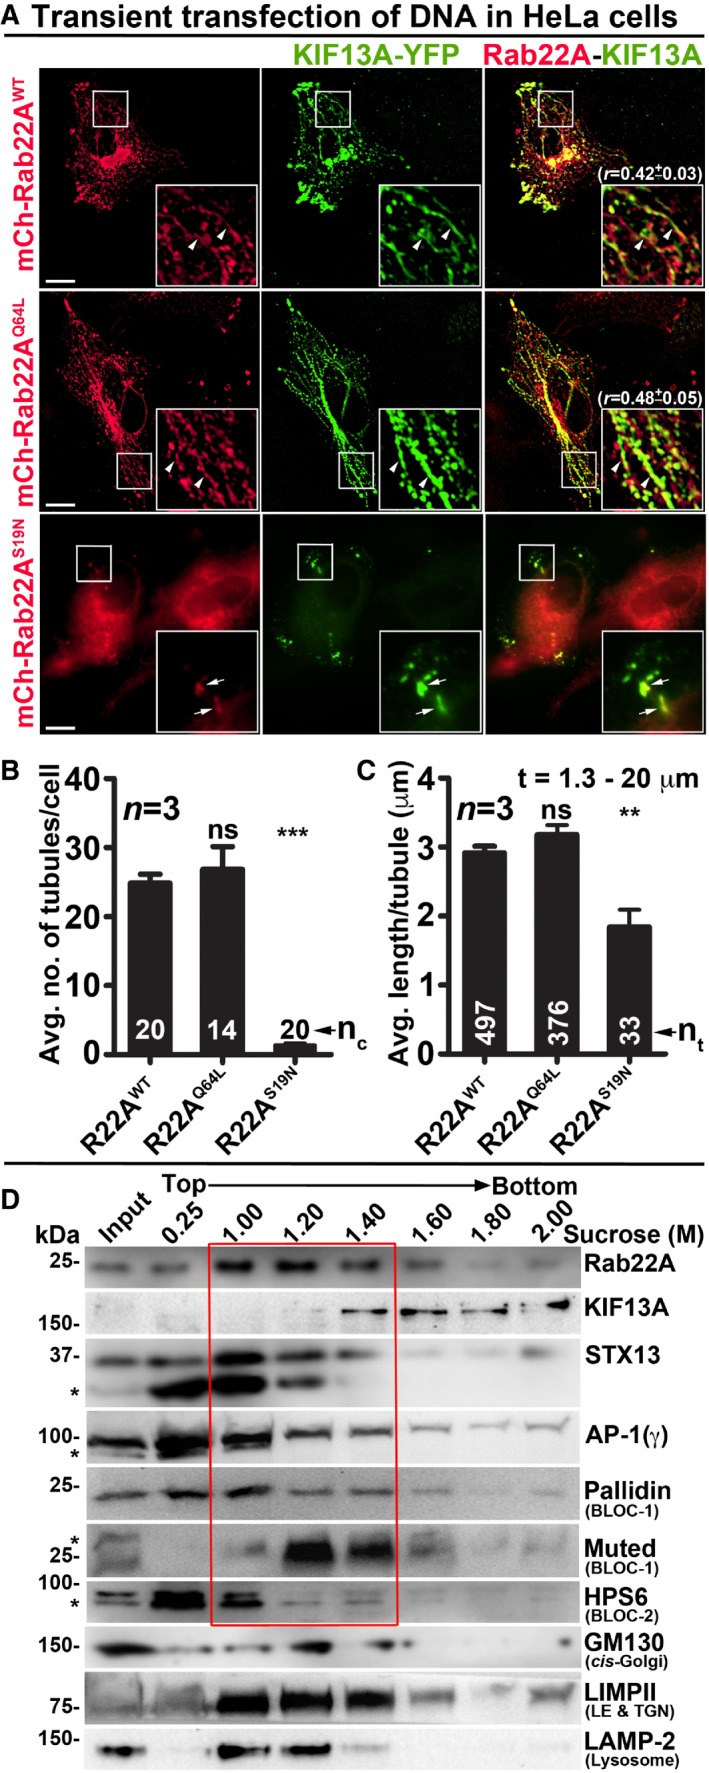 Rab22A localizes to the E/ SE and RE s and regulates RE dynamics IFM images of KIF13A‐YFP and mCherry‐Rab22A WT/Q64L/S19N cotransfected HeLa cells. Arrowheads and arrows point to the KIF13A‐positive tubular REs and E/SEs, respectively. The colocalization coefficient ( r , in mean ± SEM) between two markers was indicated separately. Scale bars: 10 μm. Graphs represent the measurement of KIF13A‐positive T N (B) and T L (C) in HeLa cells of Fig 2 A (mean ± SEM). n = 3. n c : total number of cells. n t : total number of tubules. ** P ≤ 0.01, *** P ≤ 0.001 and ns = not significant (unpaired Student's t ‐test). Subcellular fractionation of HeLa cells to probe the localization of Rab22A (red box) with respect to other organelle‐specific proteins. *, non‐specific bands.